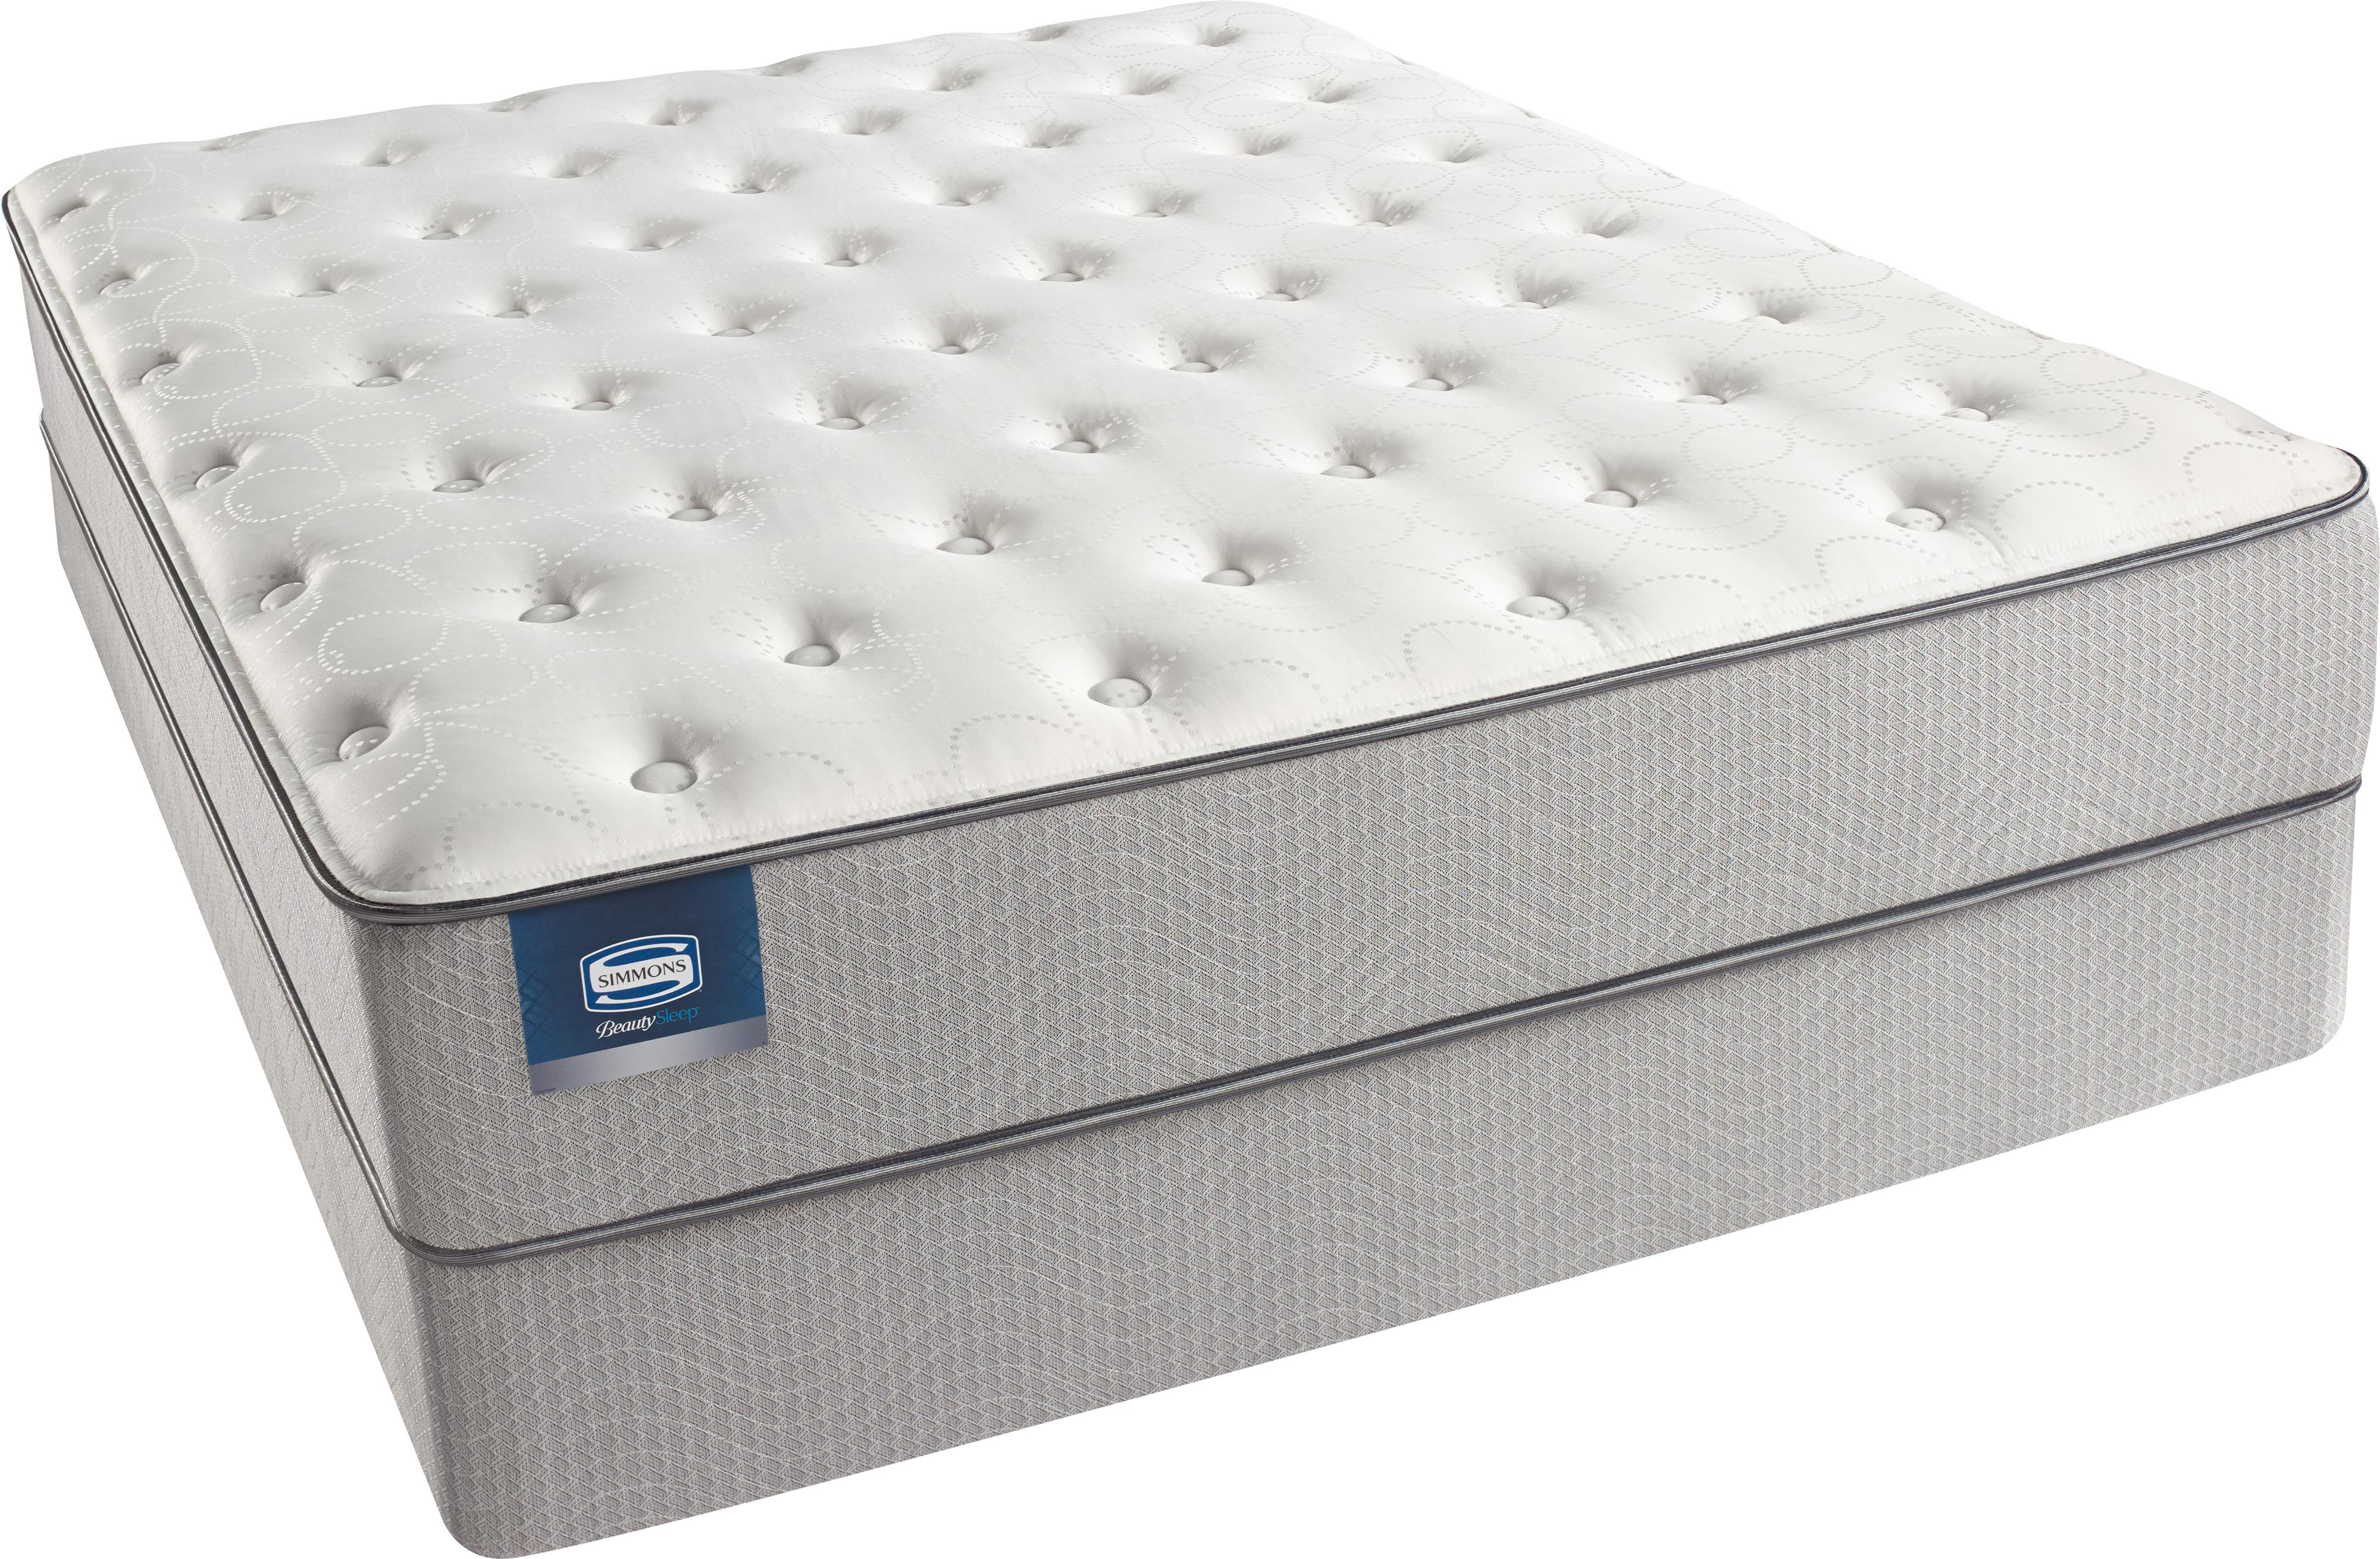 Beautyrest Beautysleep Andrea 2015 Queen Plush Mattress Set - Item Number: 700600500Q+700600775Q